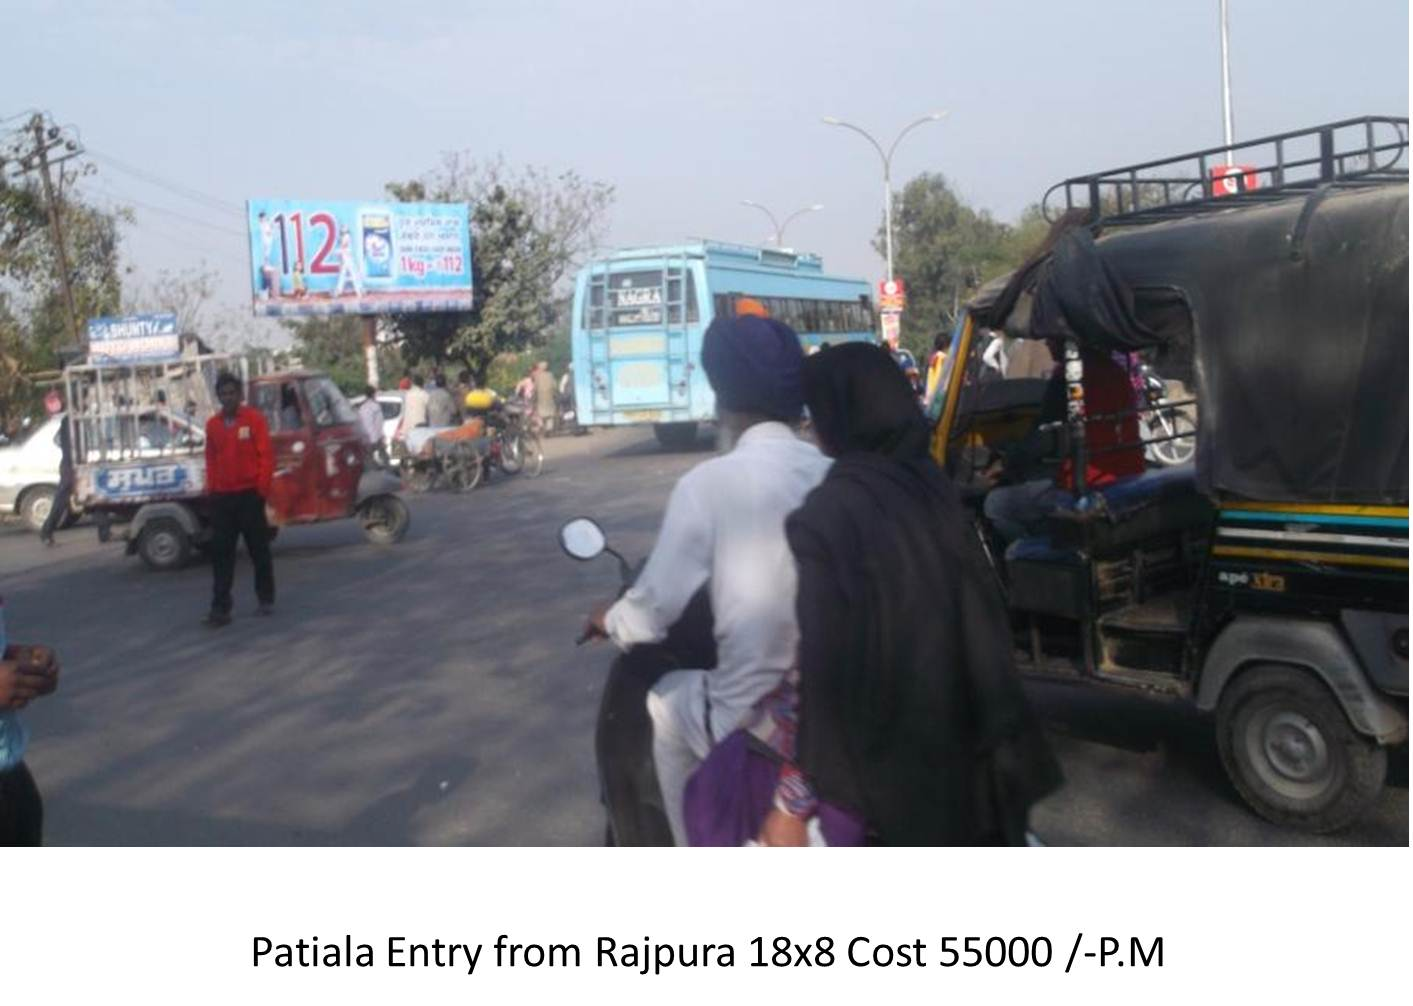 Entry from Rajpura, Patiala